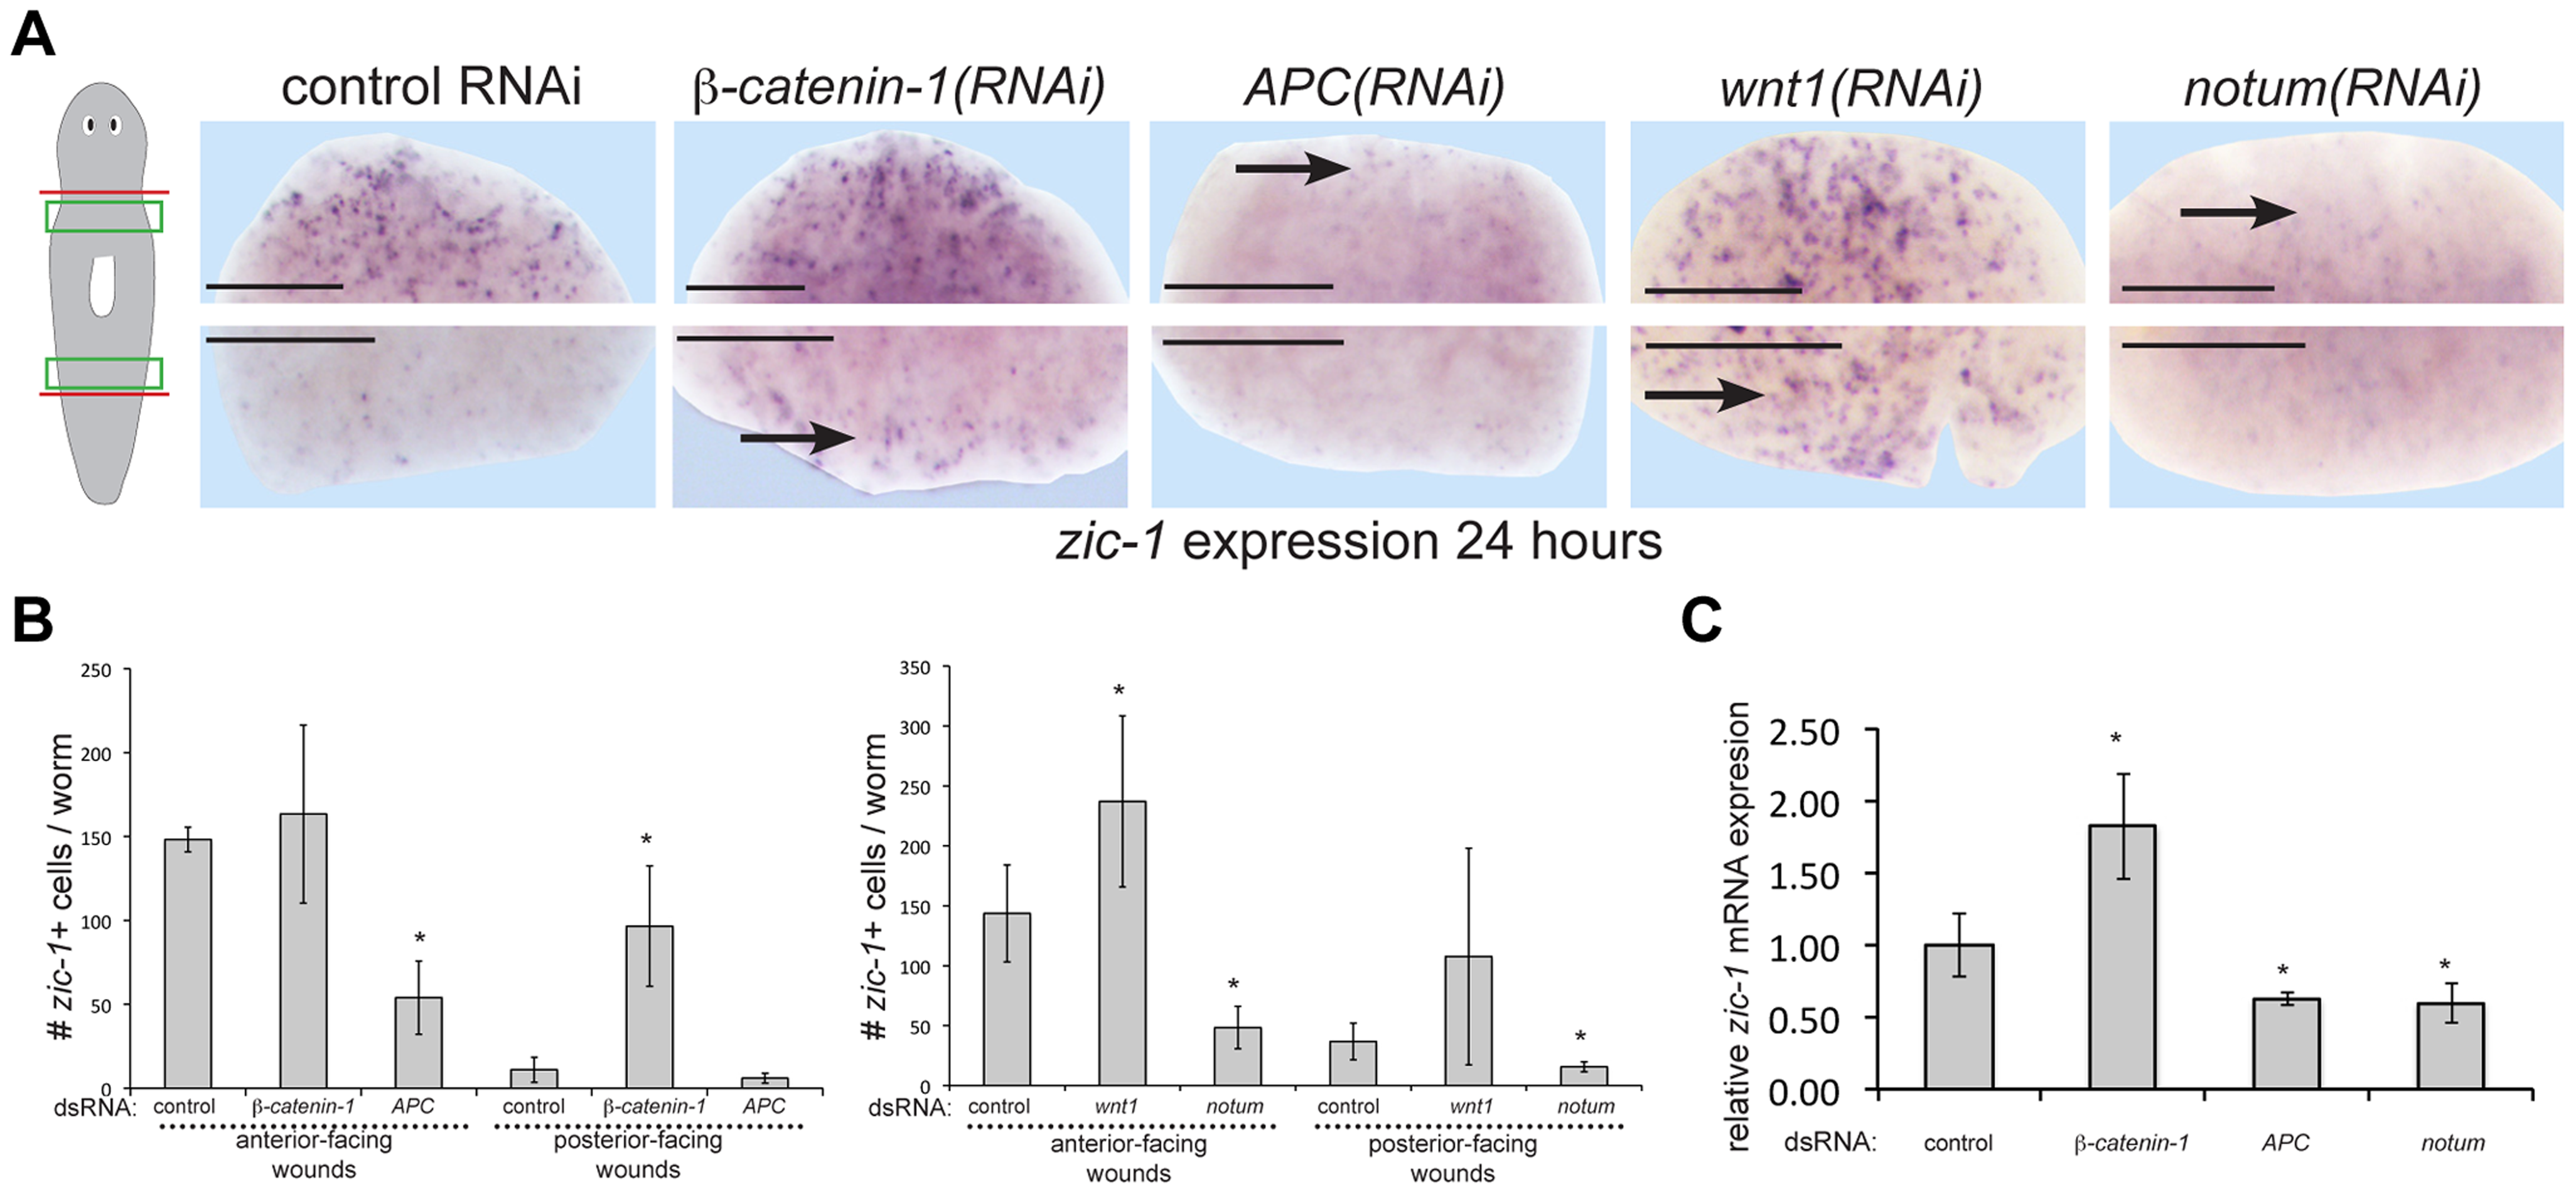 Polarized expression of <i>zic-1</i> early after injury is controlled by <i>notum</i>'s inhibition of canonical Wnt signaling.